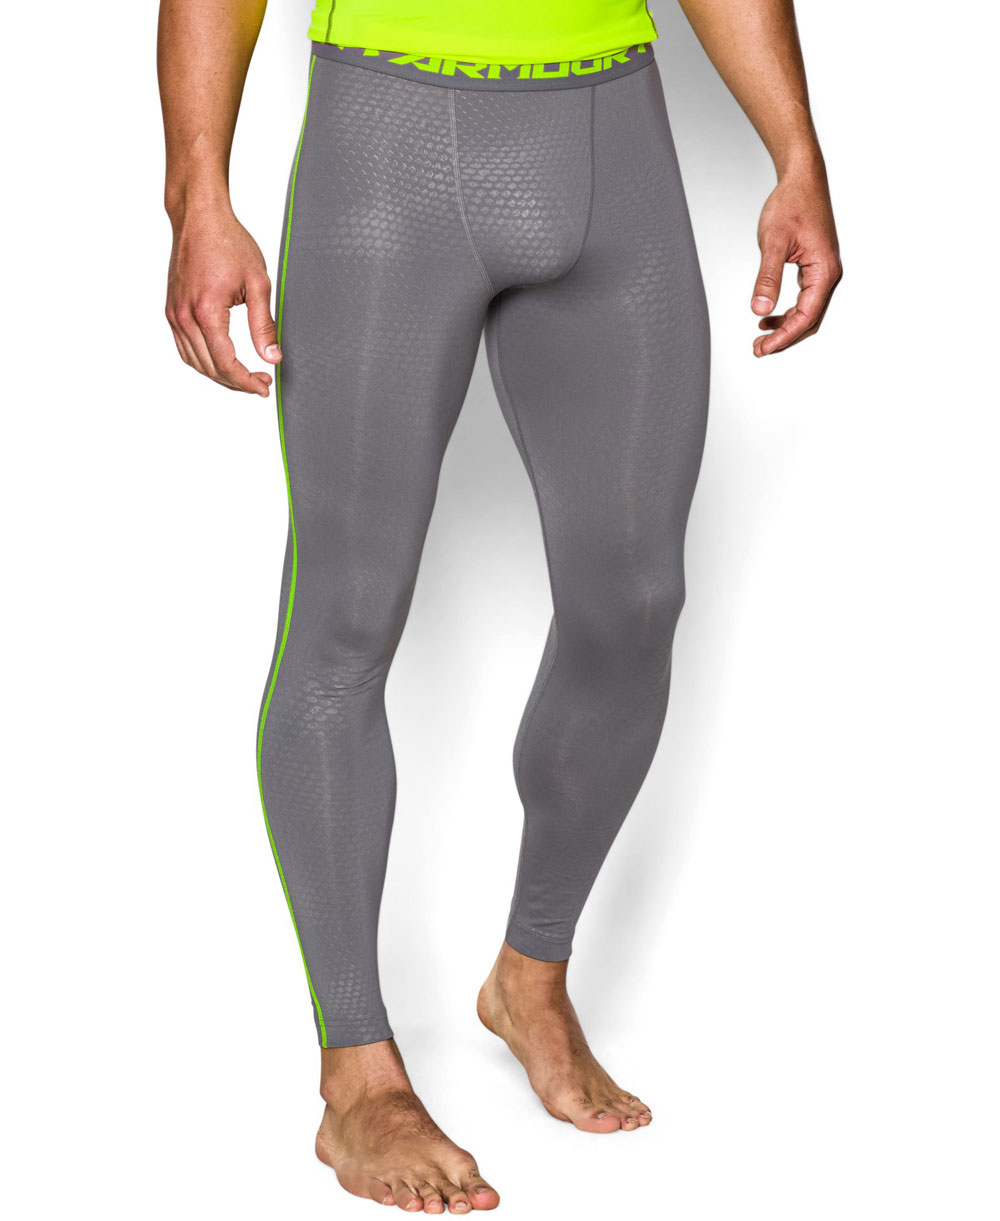 dd09d1bd8aa20 Under Armour HeatGear Armour Printed Men's Leggings Graphite